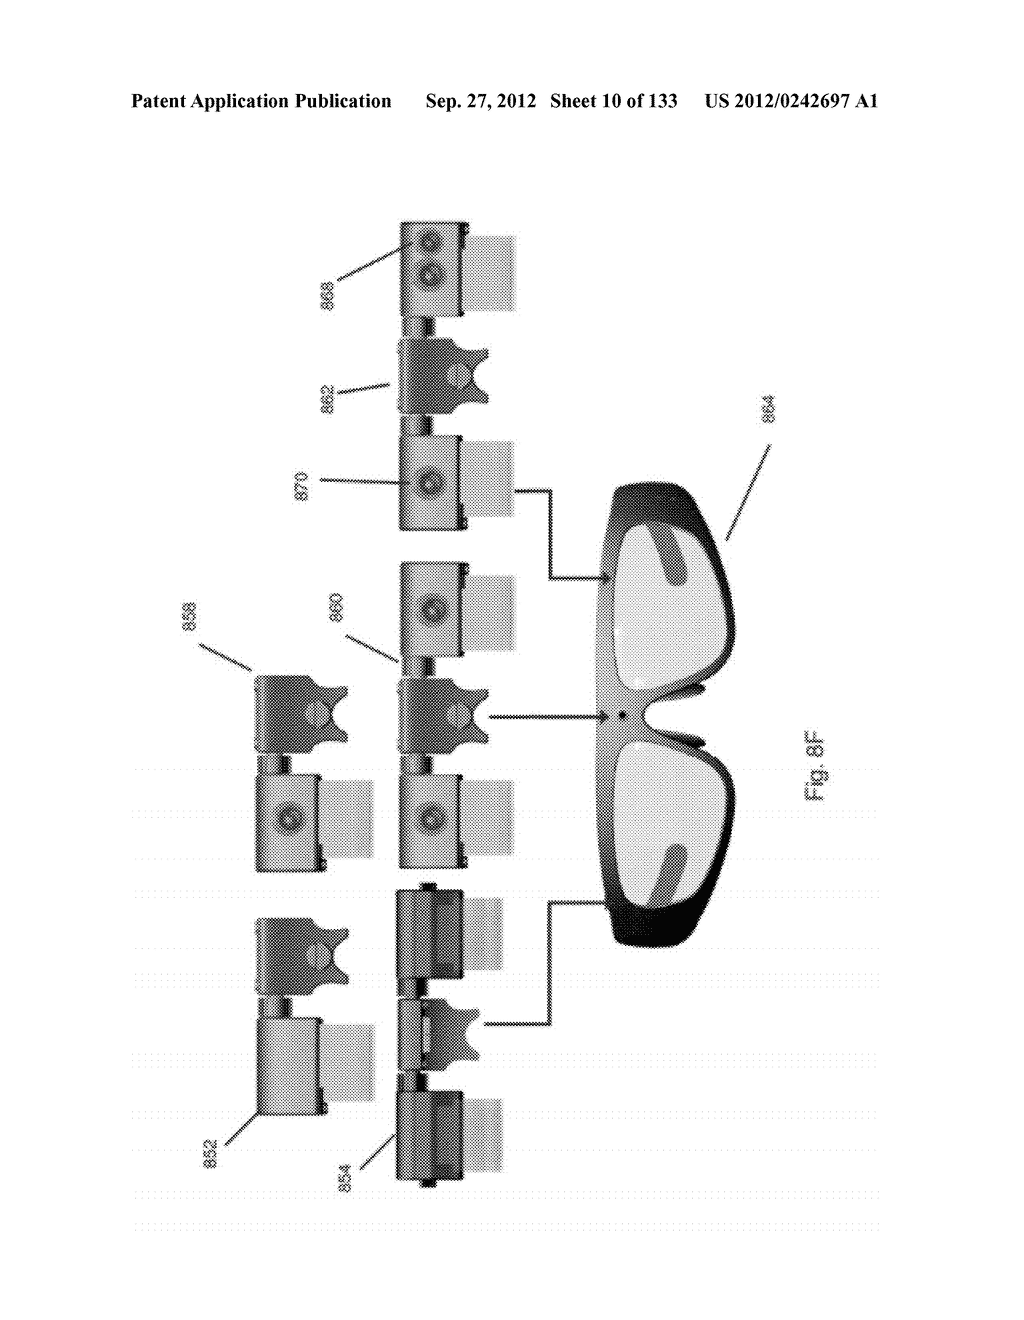 SEE-THROUGH NEAR-EYE DISPLAY GLASSES WITH THE OPTICAL ASSEMBLY INCLUDING     ABSORPTIVE POLARIZERS OR ANTI-REFLECTIVE COATINGS TO REDUCE STRAY LIGHT - diagram, schematic, and image 11